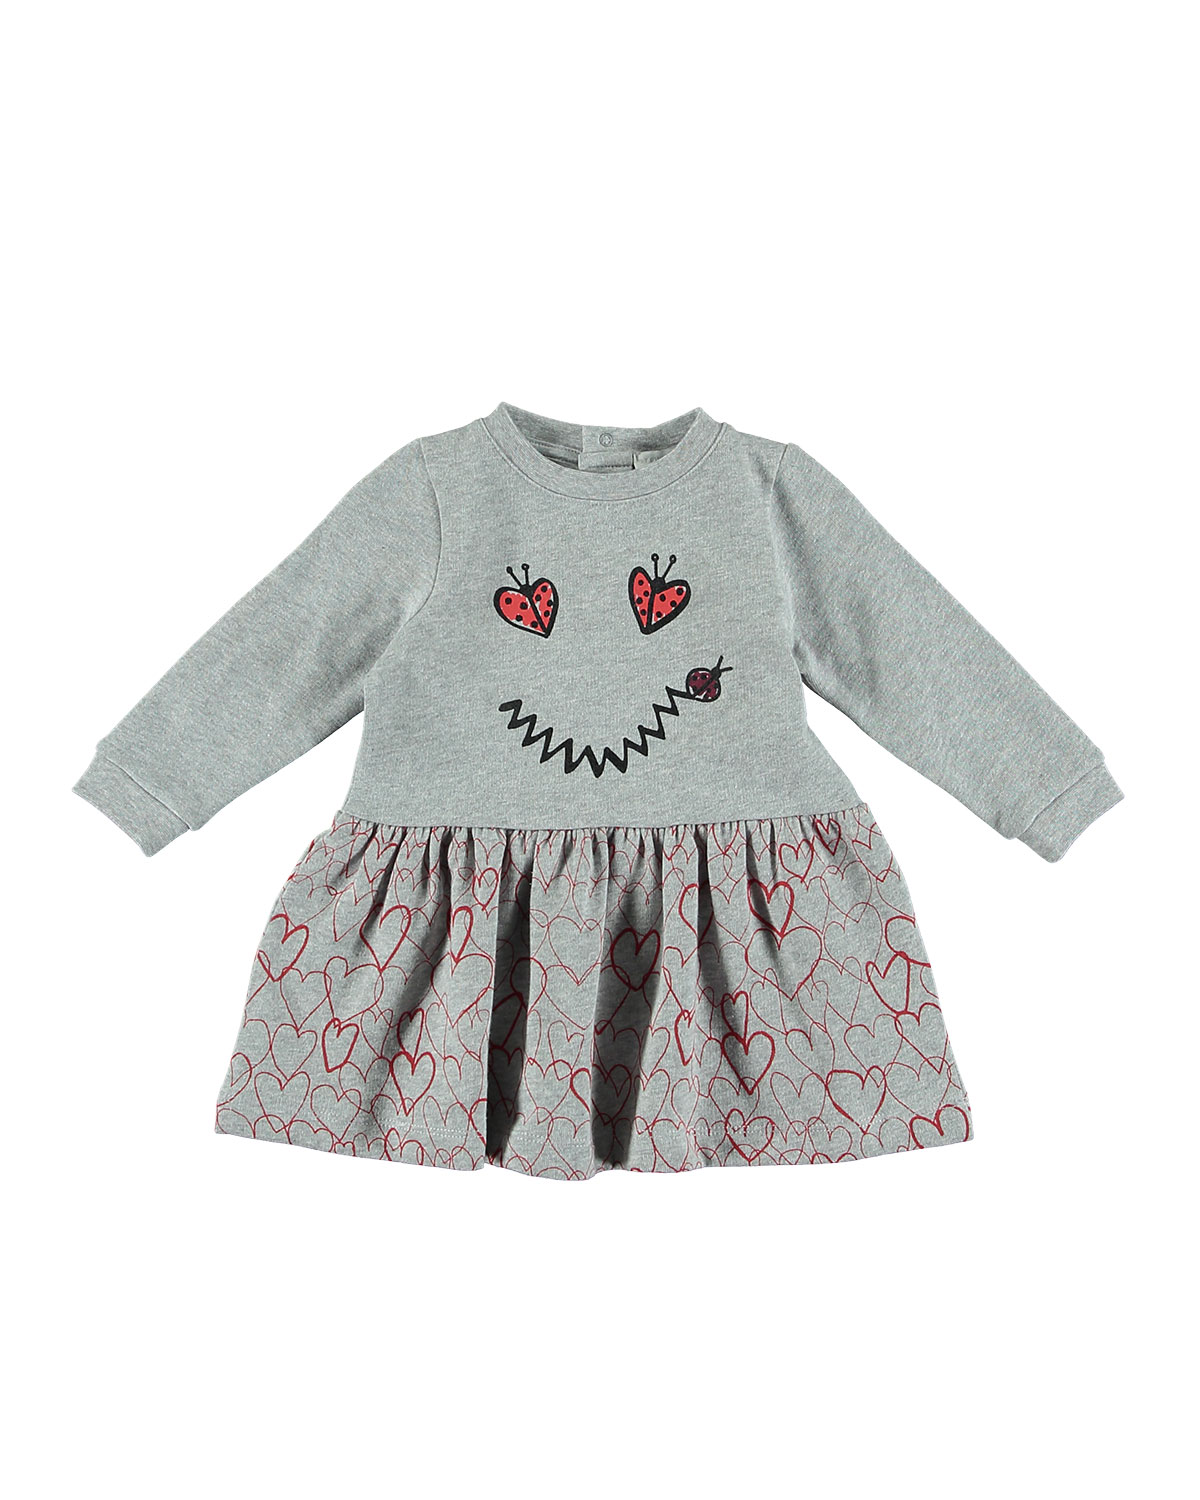 d41692249c63 Stella McCartney Kids Ladybug Smiley Face   Heart Long-Sleeve Dress ...